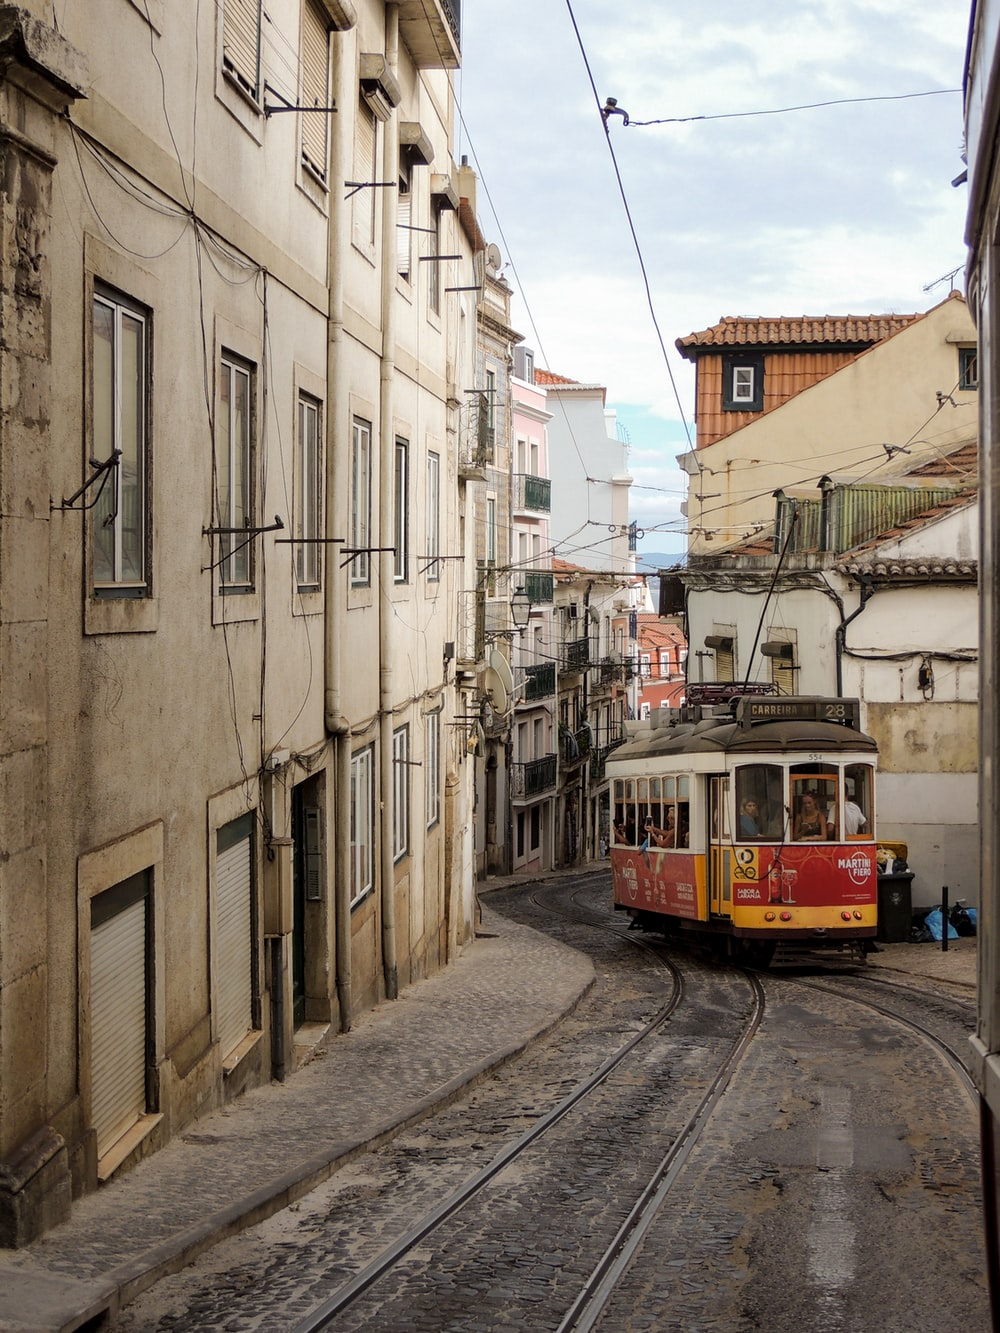 red and white tram on road between buildings during daytime